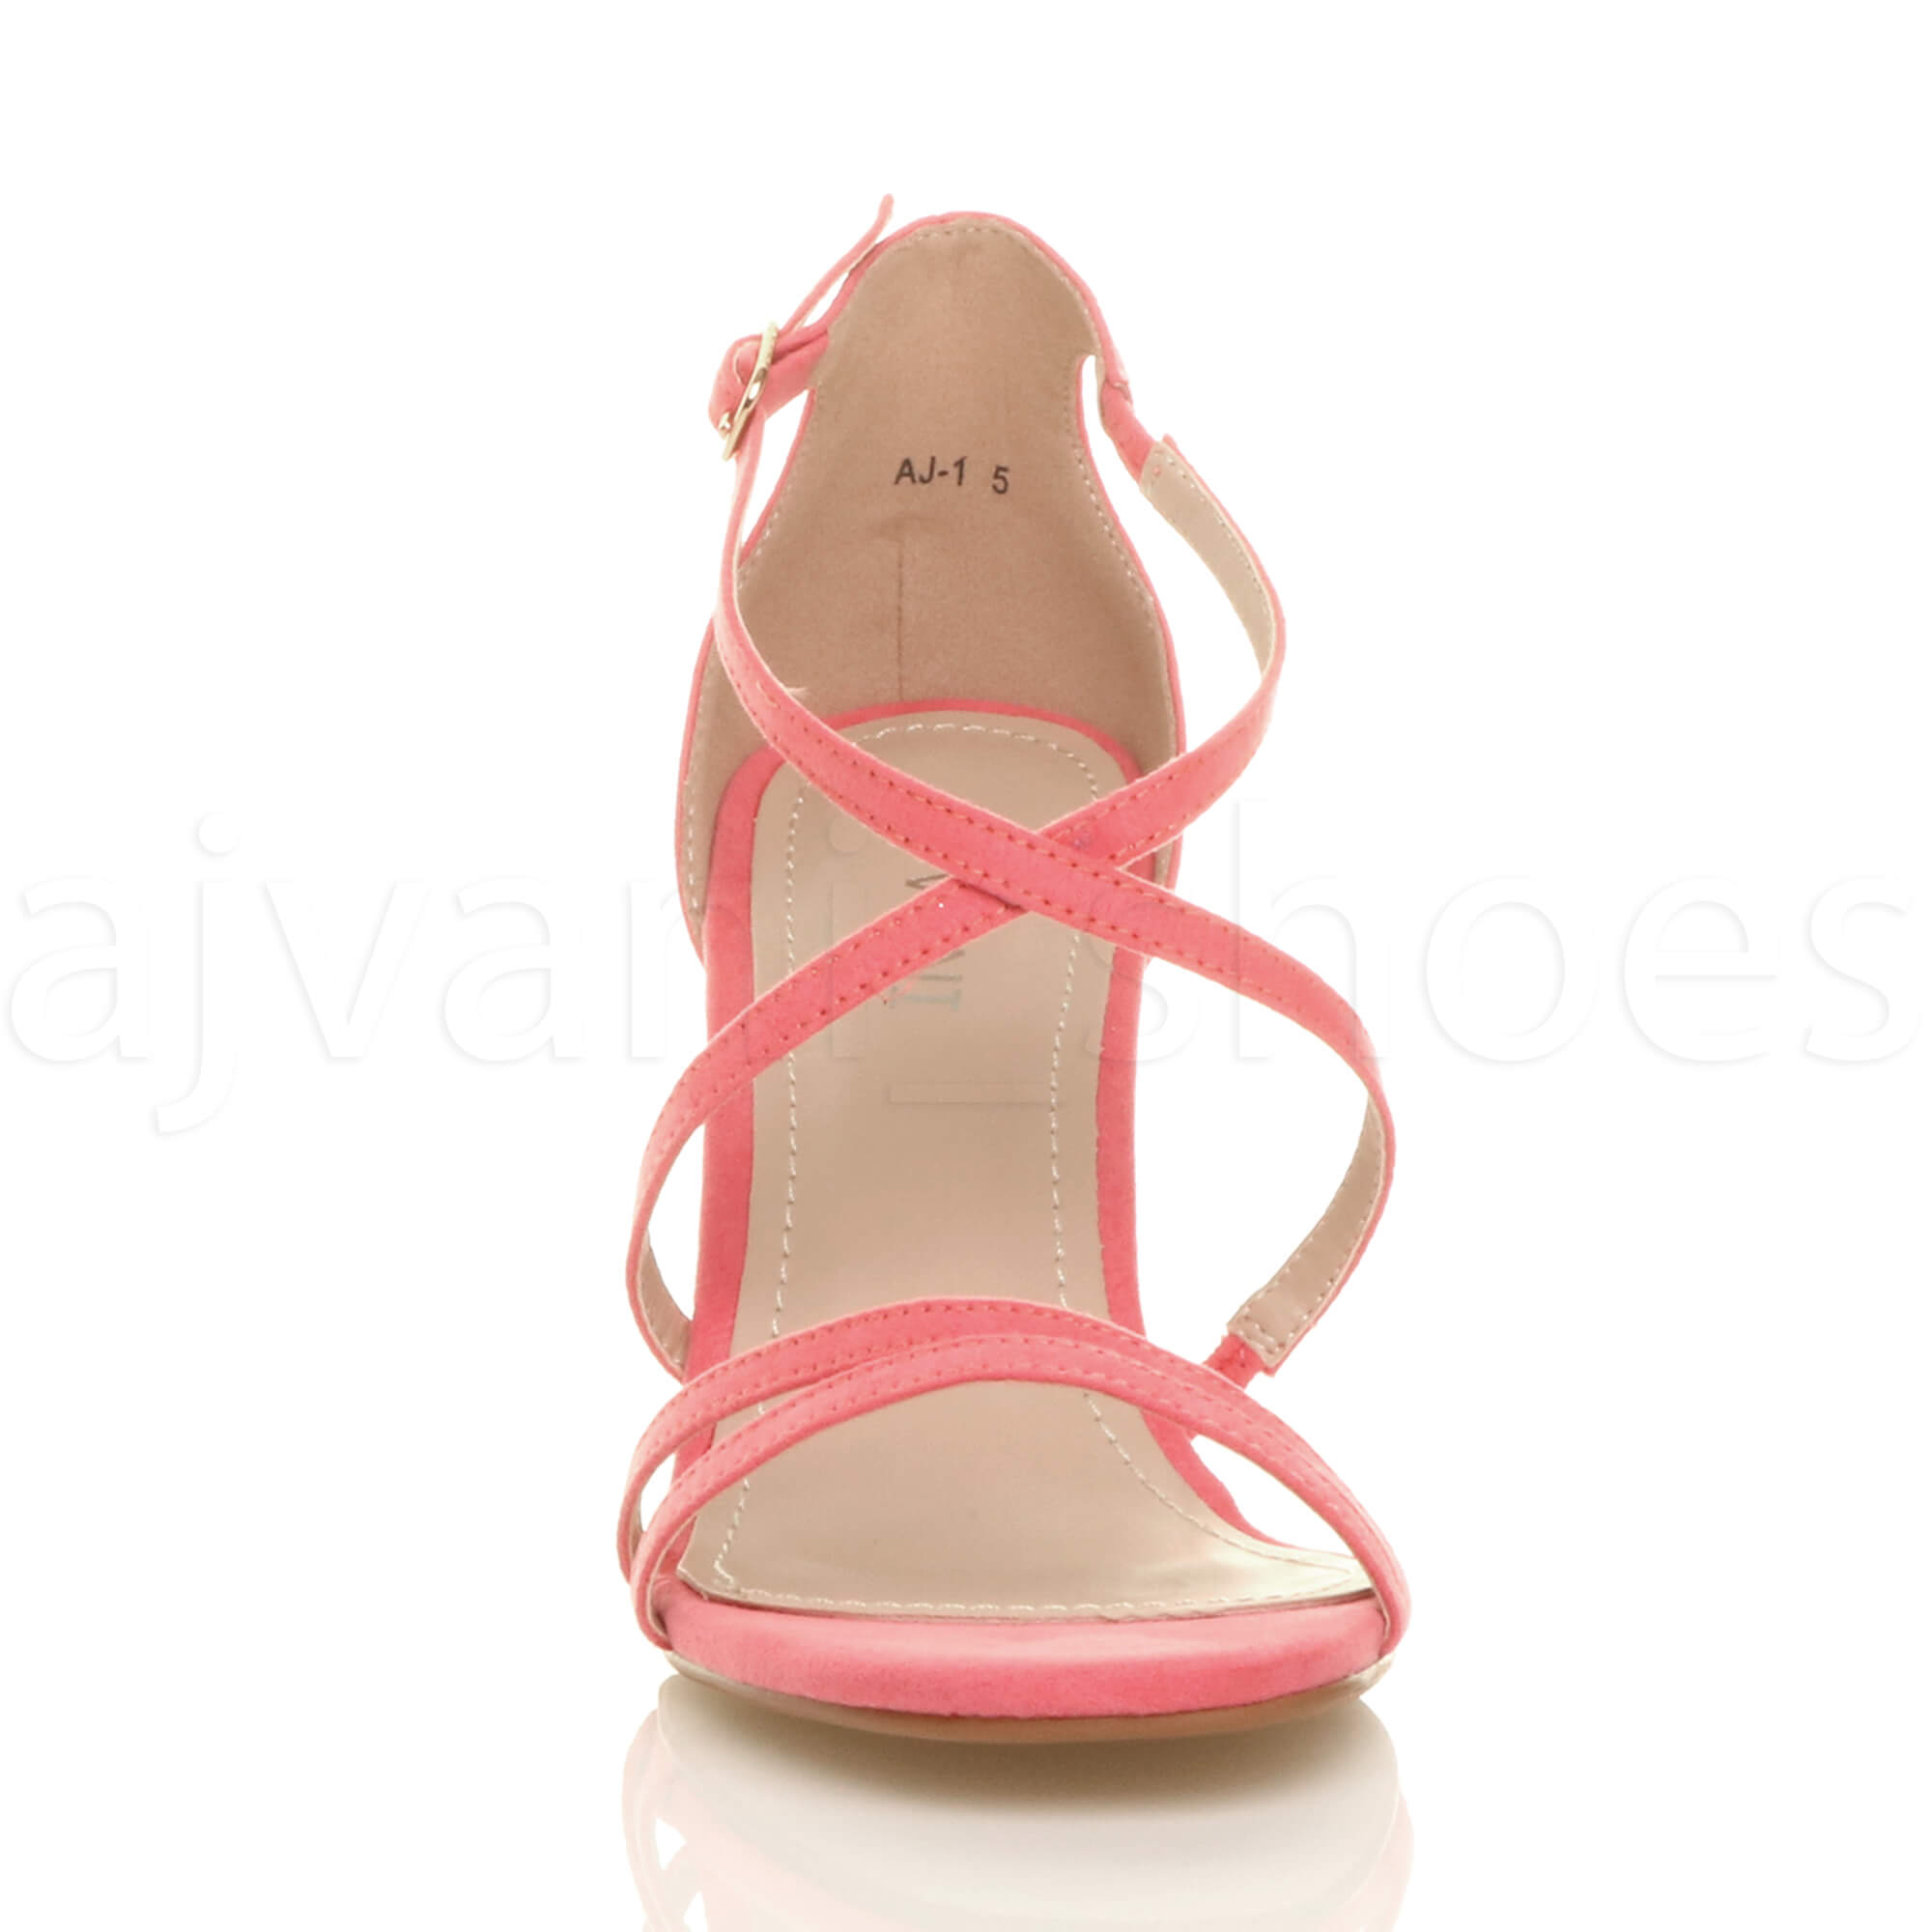 WOMENS-LADIES-MID-HIGH-HEEL-STRAPPY-CROSSOVER-WEDDING-PROM-SANDALS-SHOES-SIZE thumbnail 41